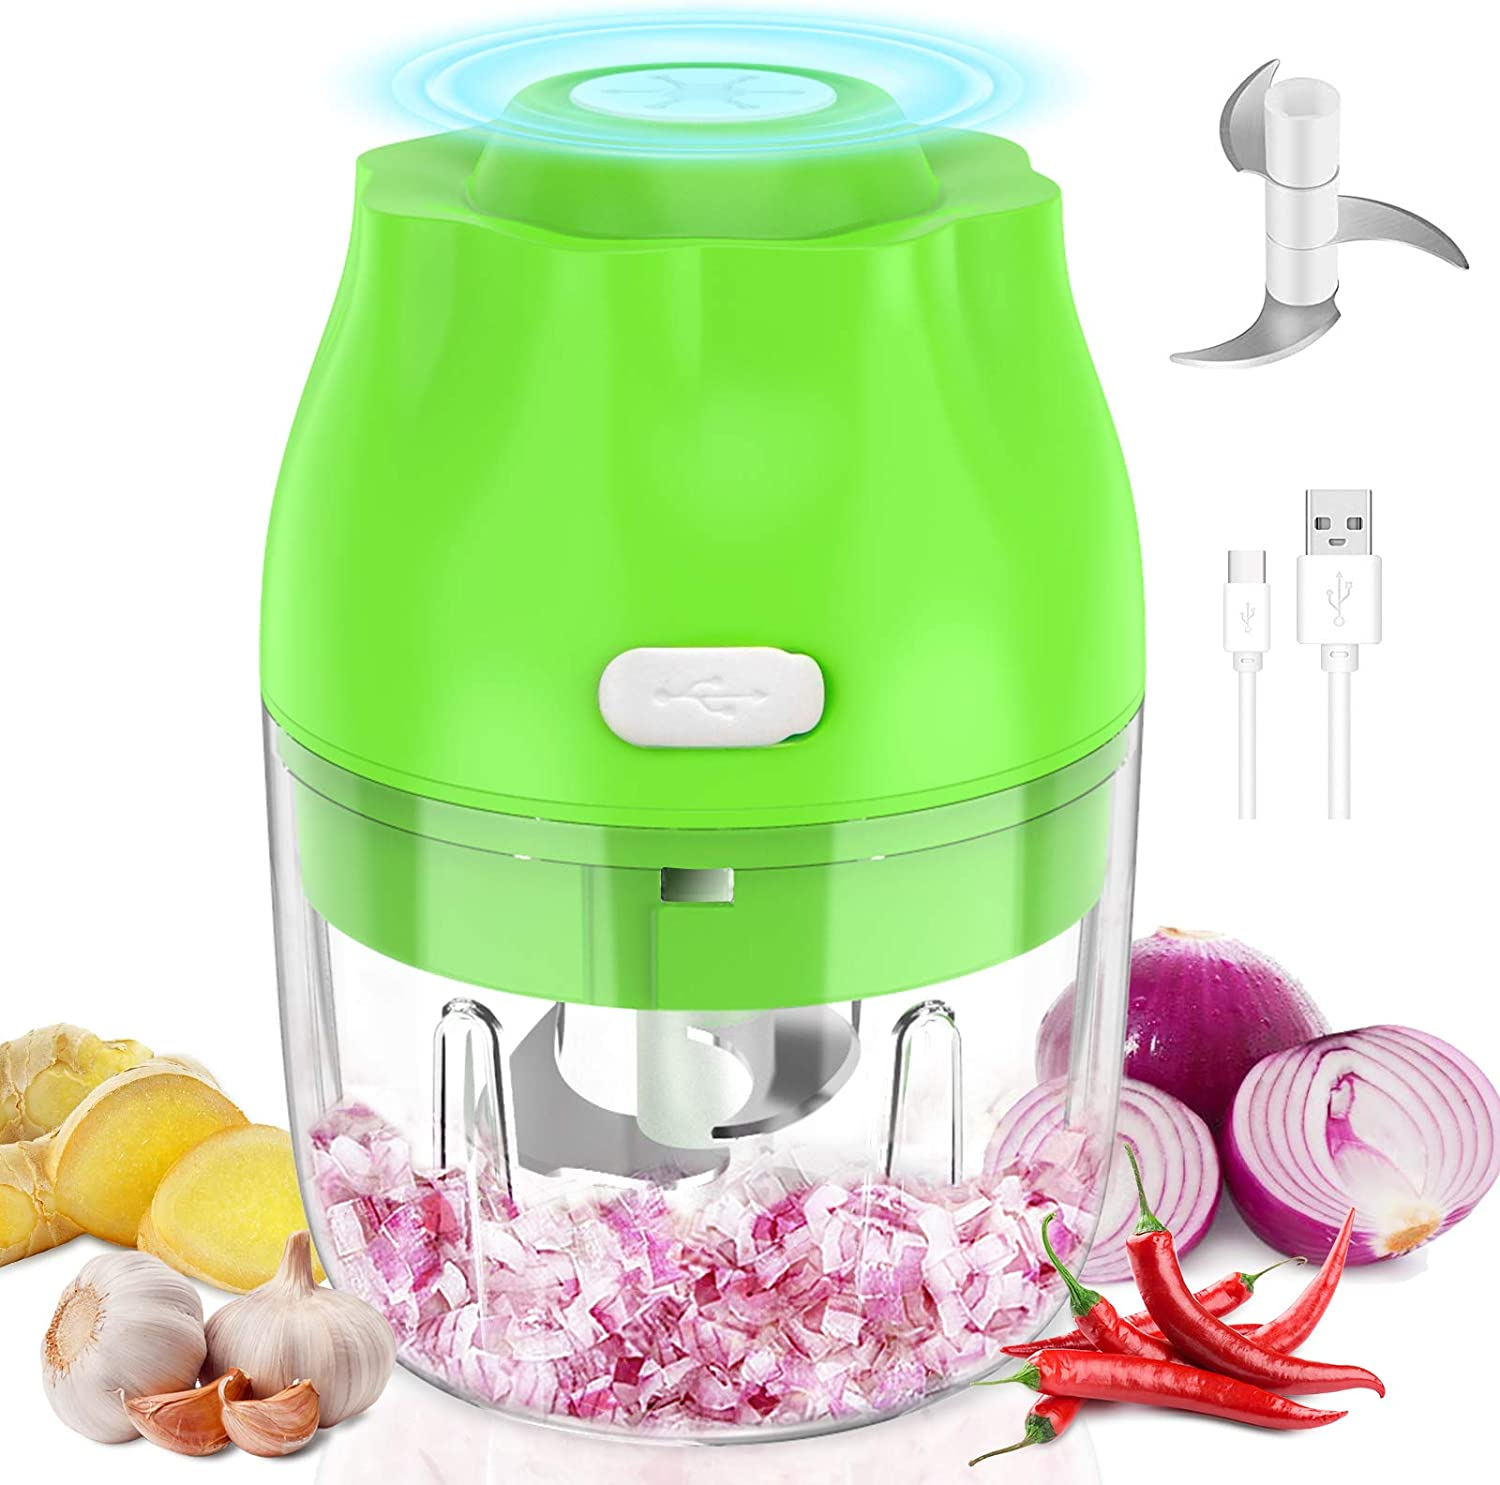 Electric Mini Garlic Chopper, Synmixx Portable Mini Food Chopper Vegetable Slicer Meat Grinder with Type-C Charge Port, 2 Blades, Garlic Blender with for Chopping Garlic/Onions/Chili/Ginger(250 ml)